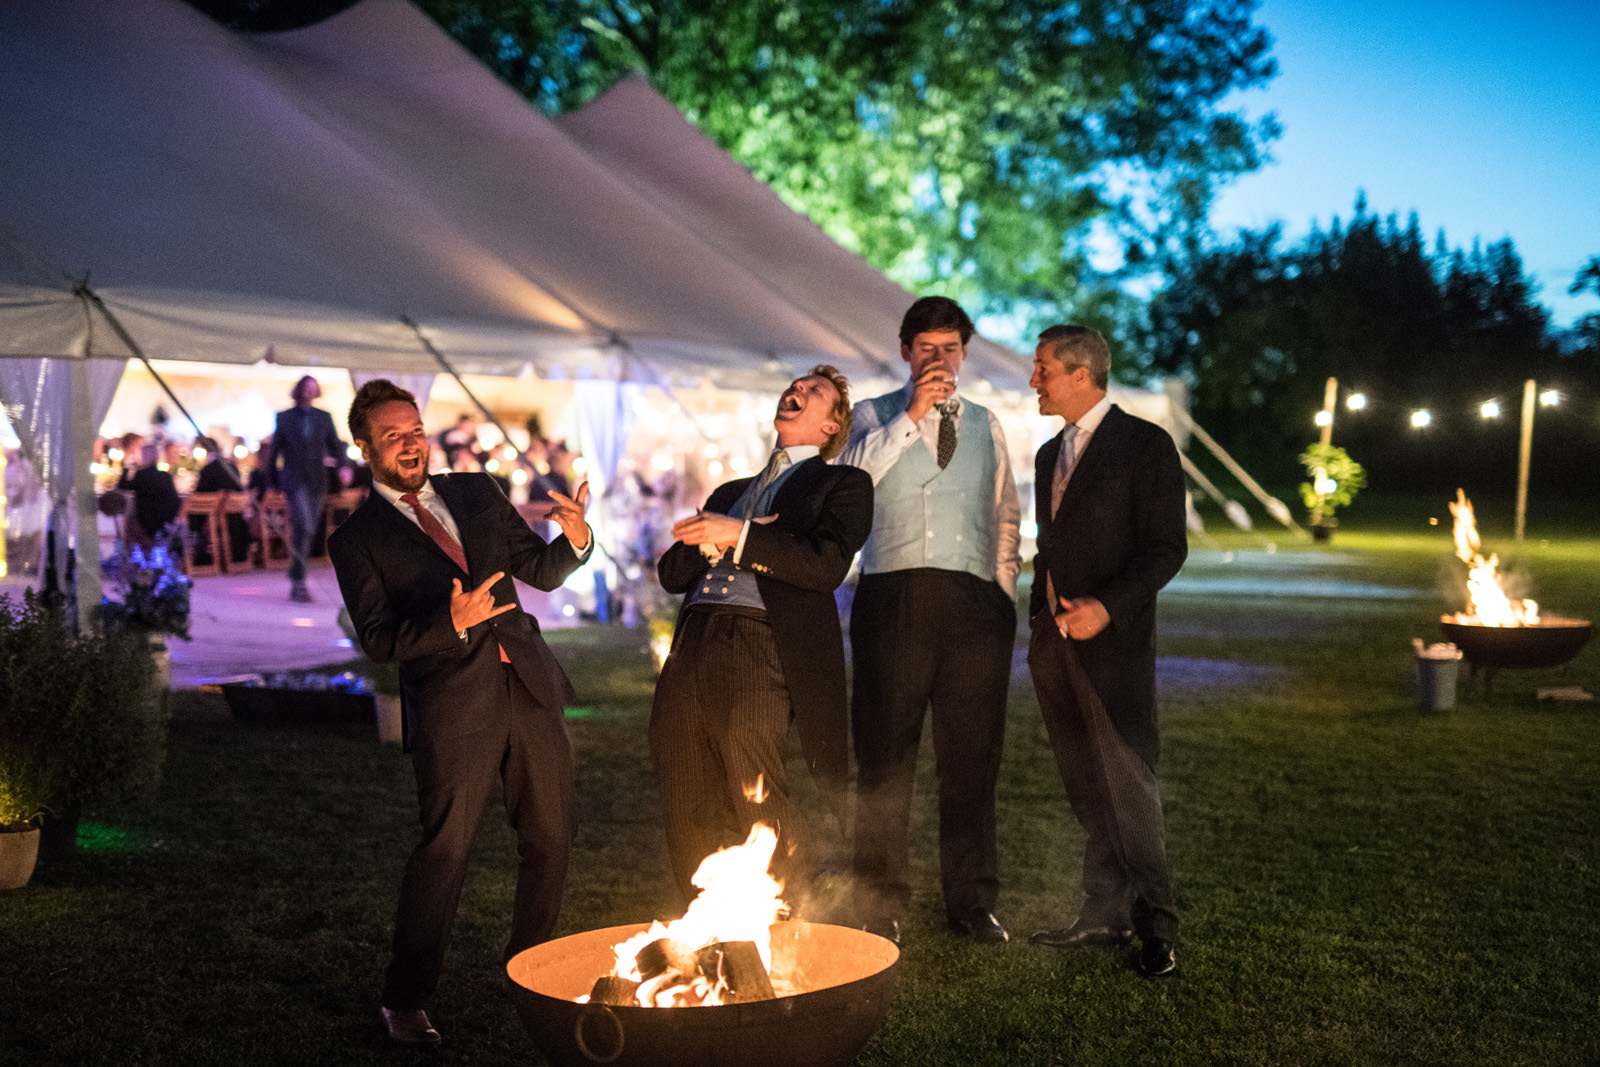 Wedding guests laughing by a fire pit